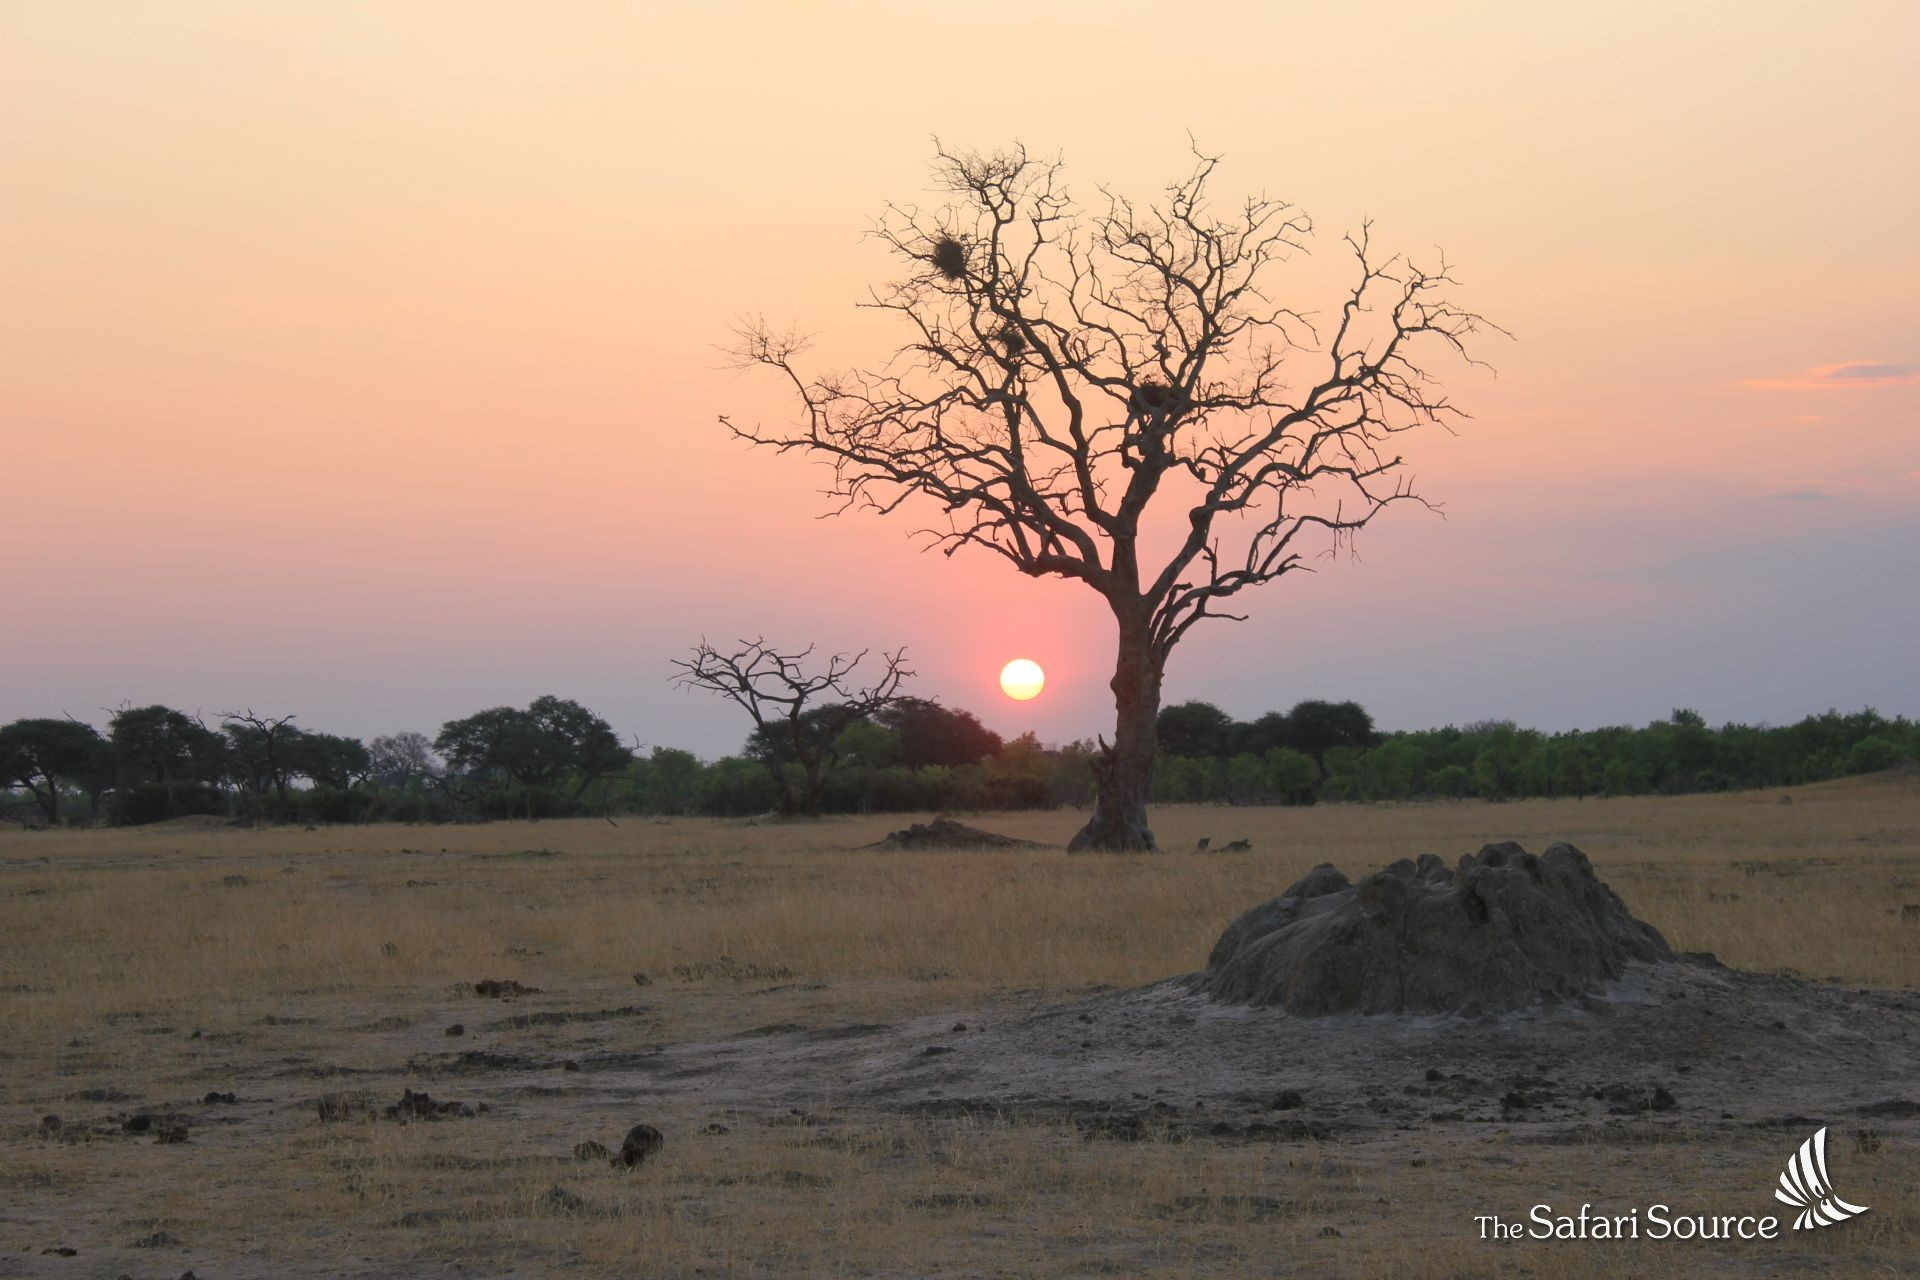 African sunsets are some of the most stunning sunsets. Why does it look so red?